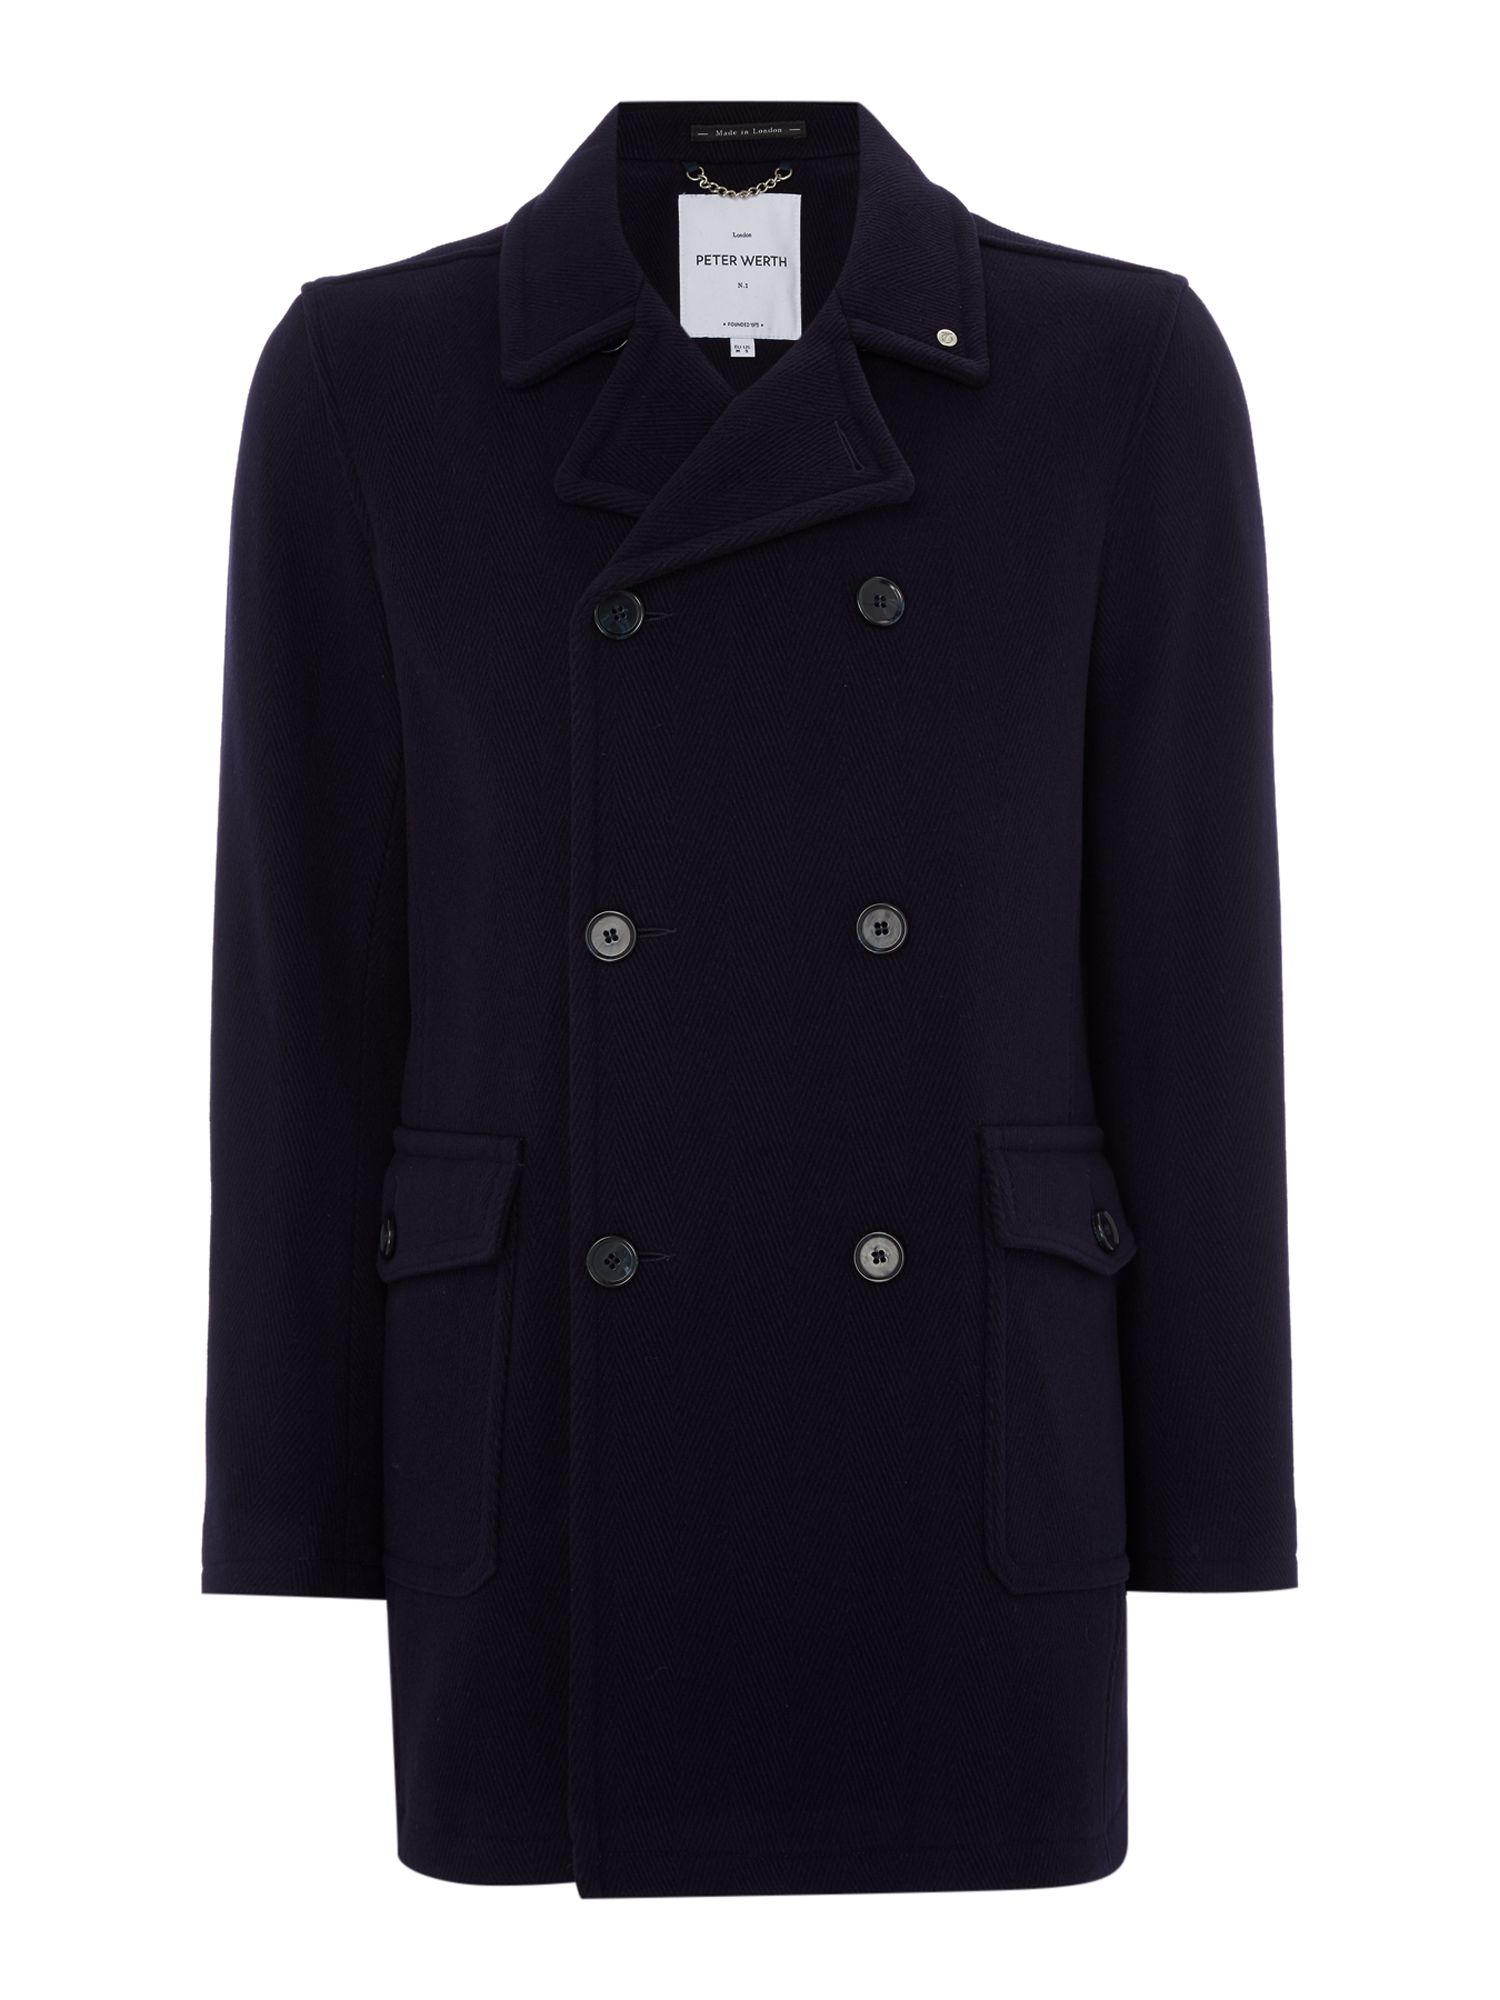 Mens Peter Werth Walney Baker Double Breasted Jacket Navy